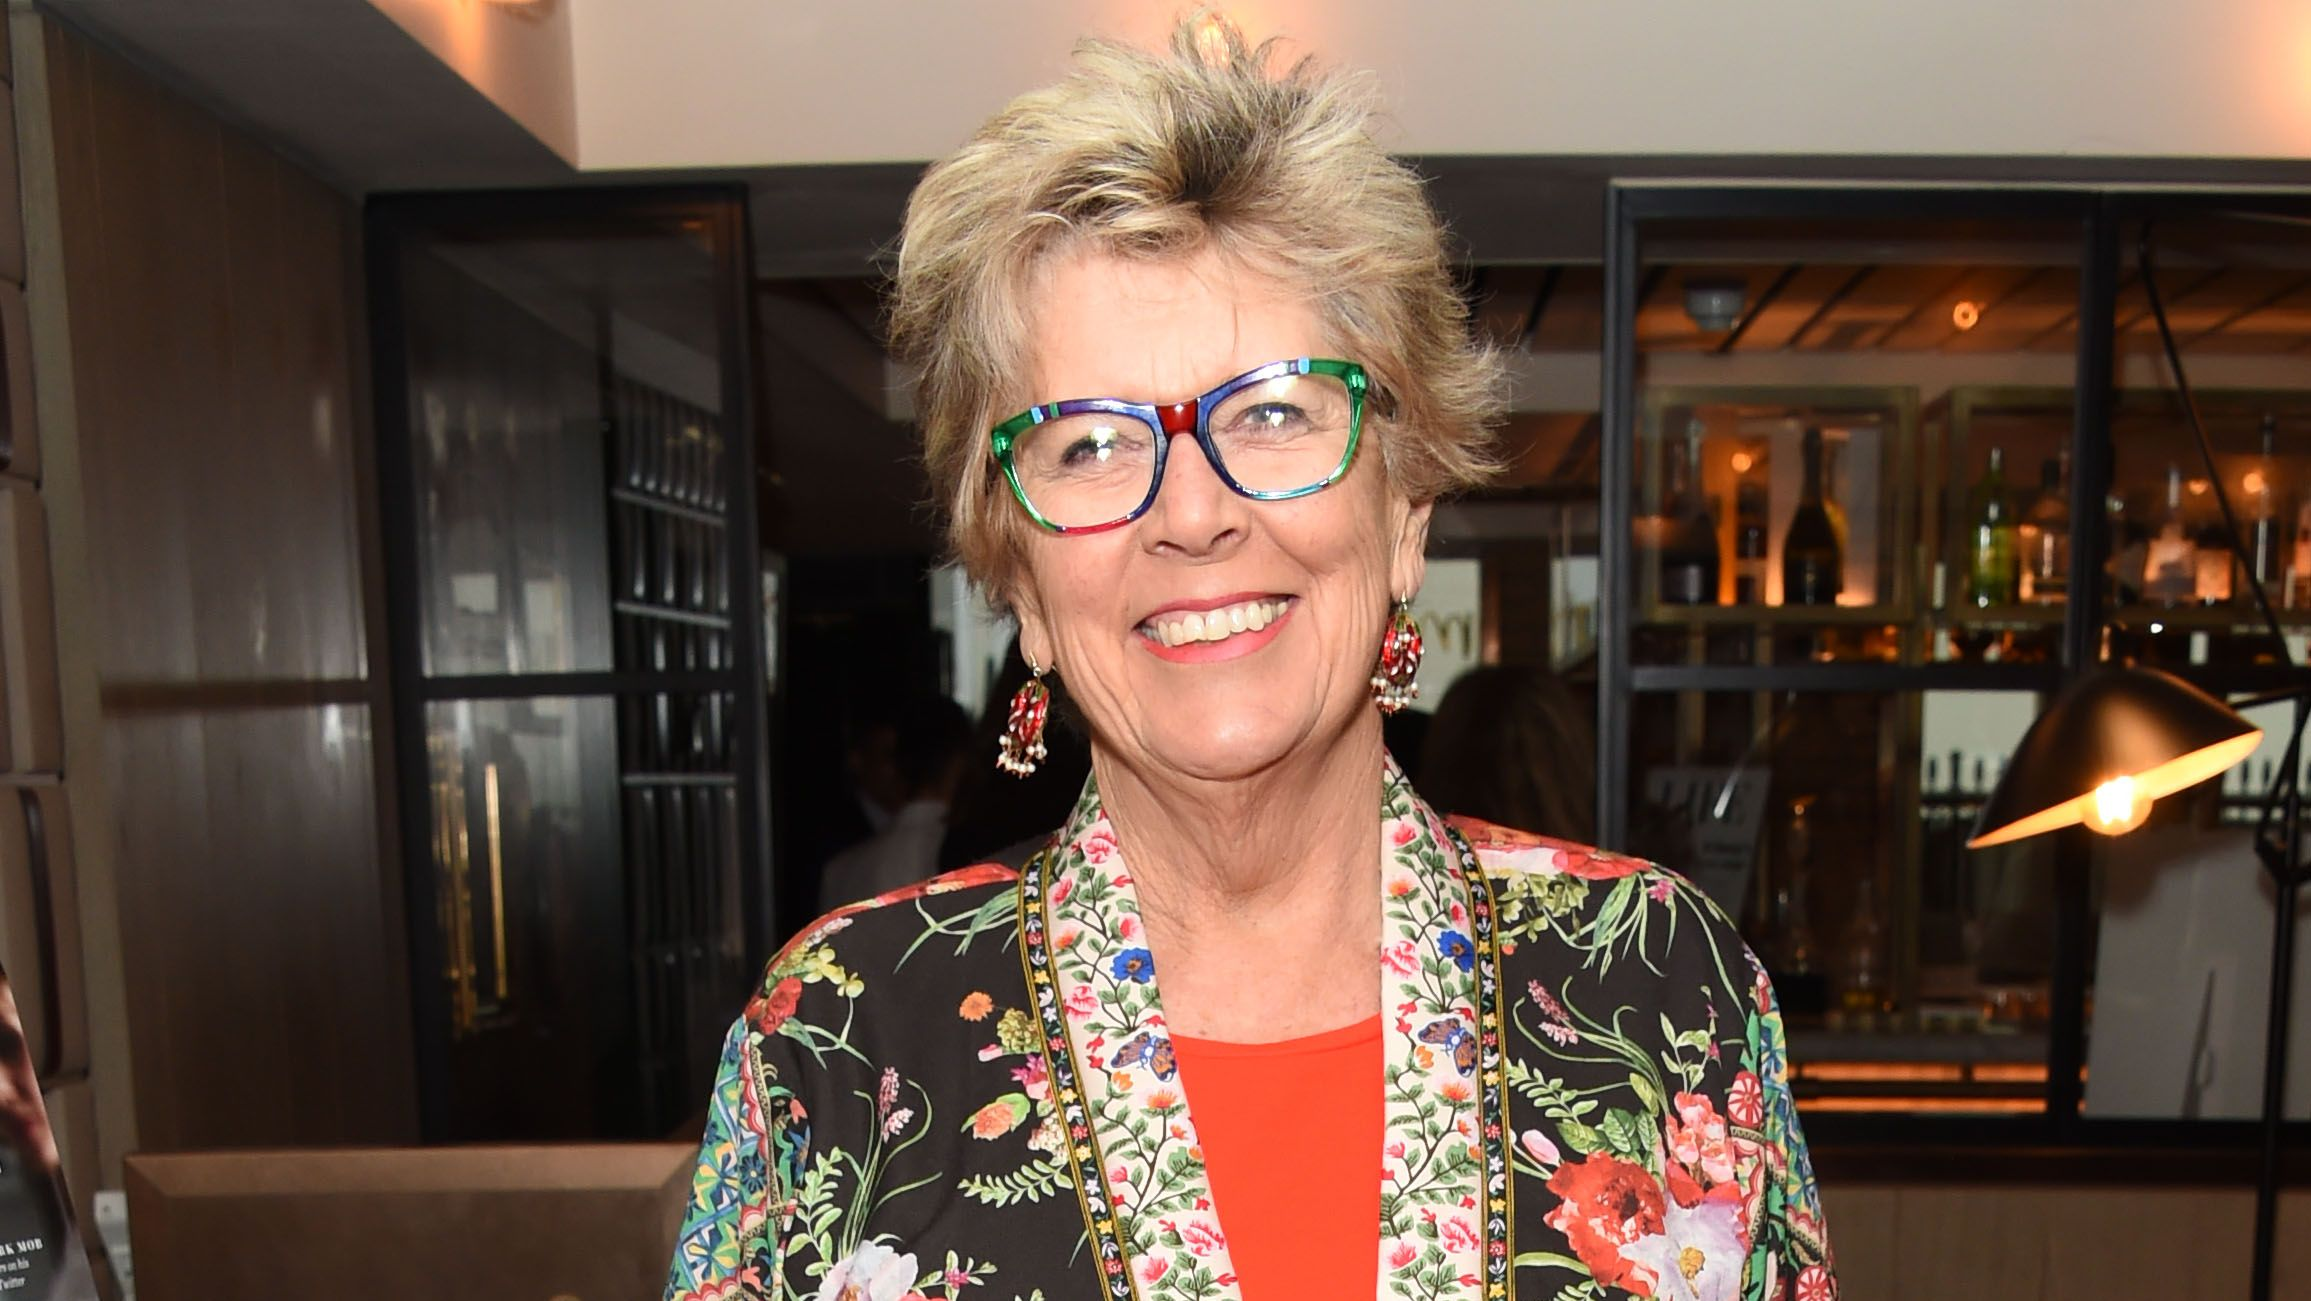 Prue Leith set to join Prima readers in the country that inspired her career